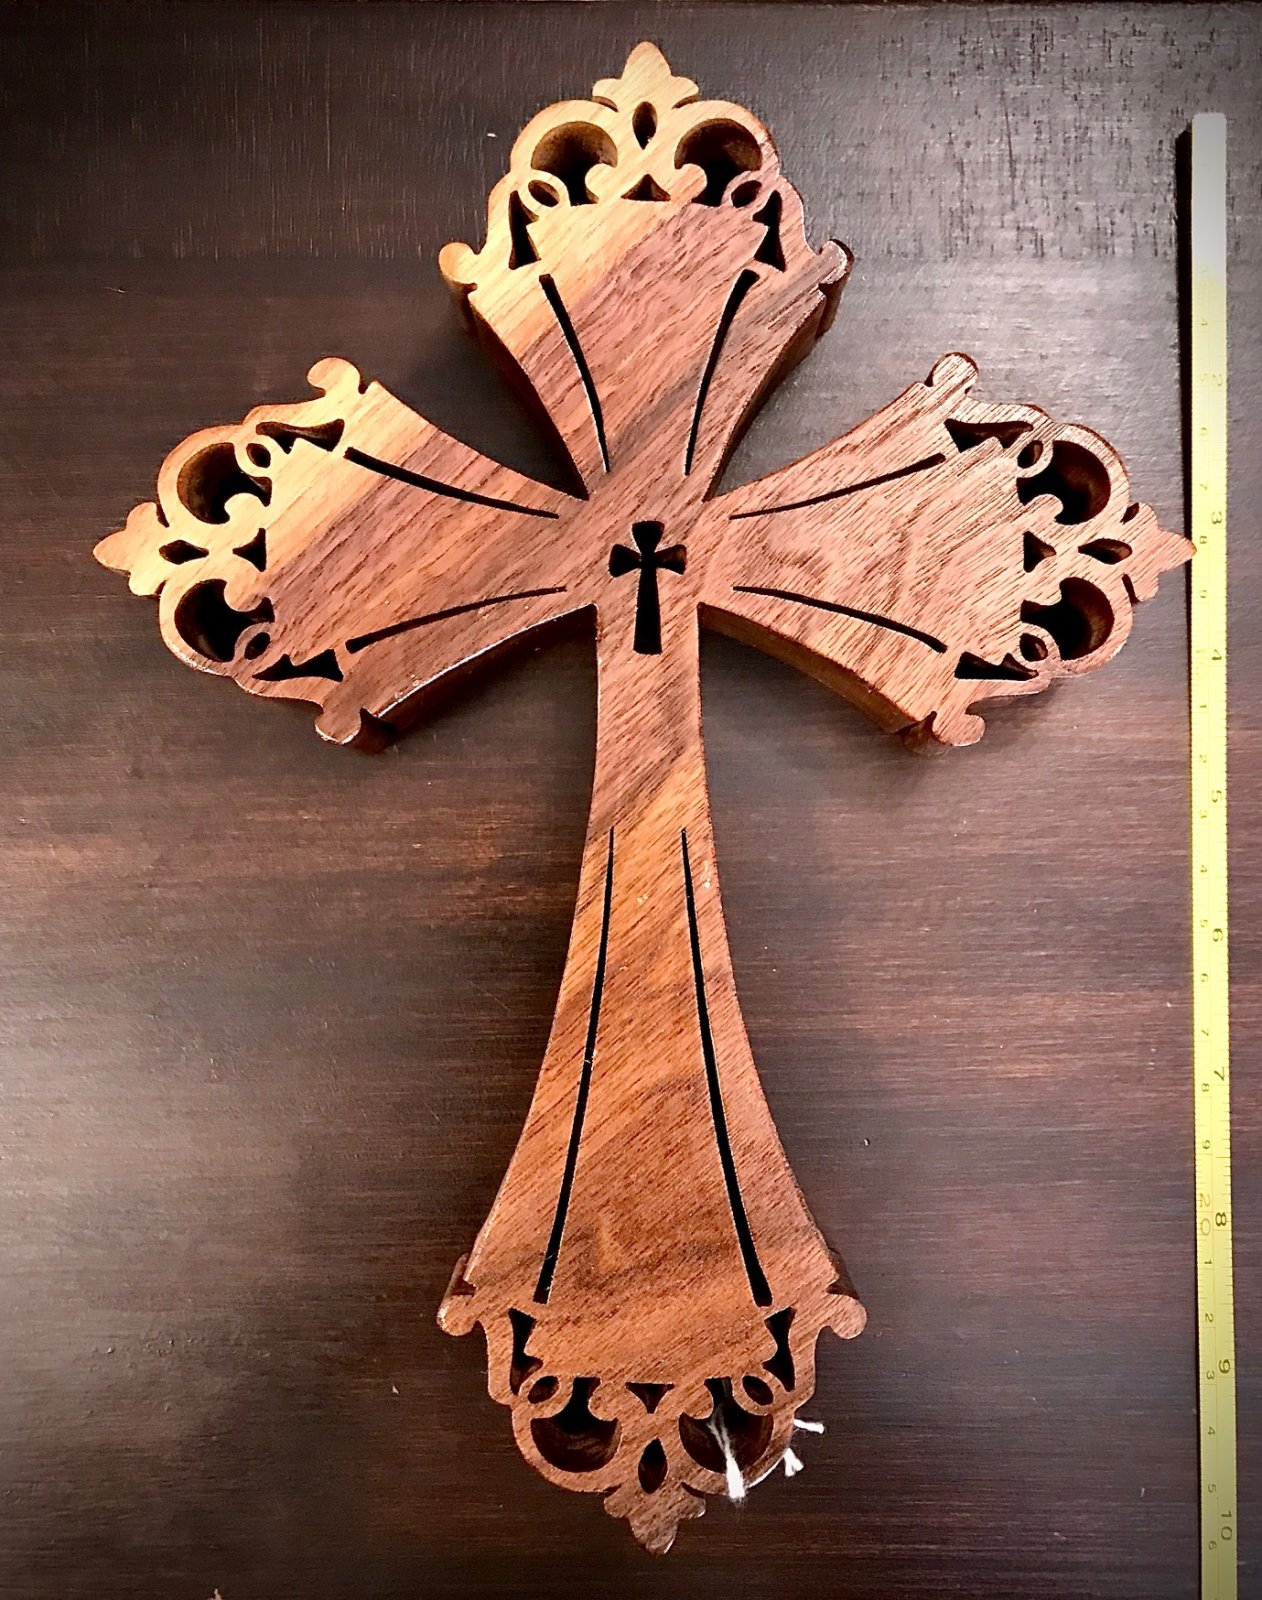 Walnut Wood Cross 10 Inch by Jo Ann Wiggs